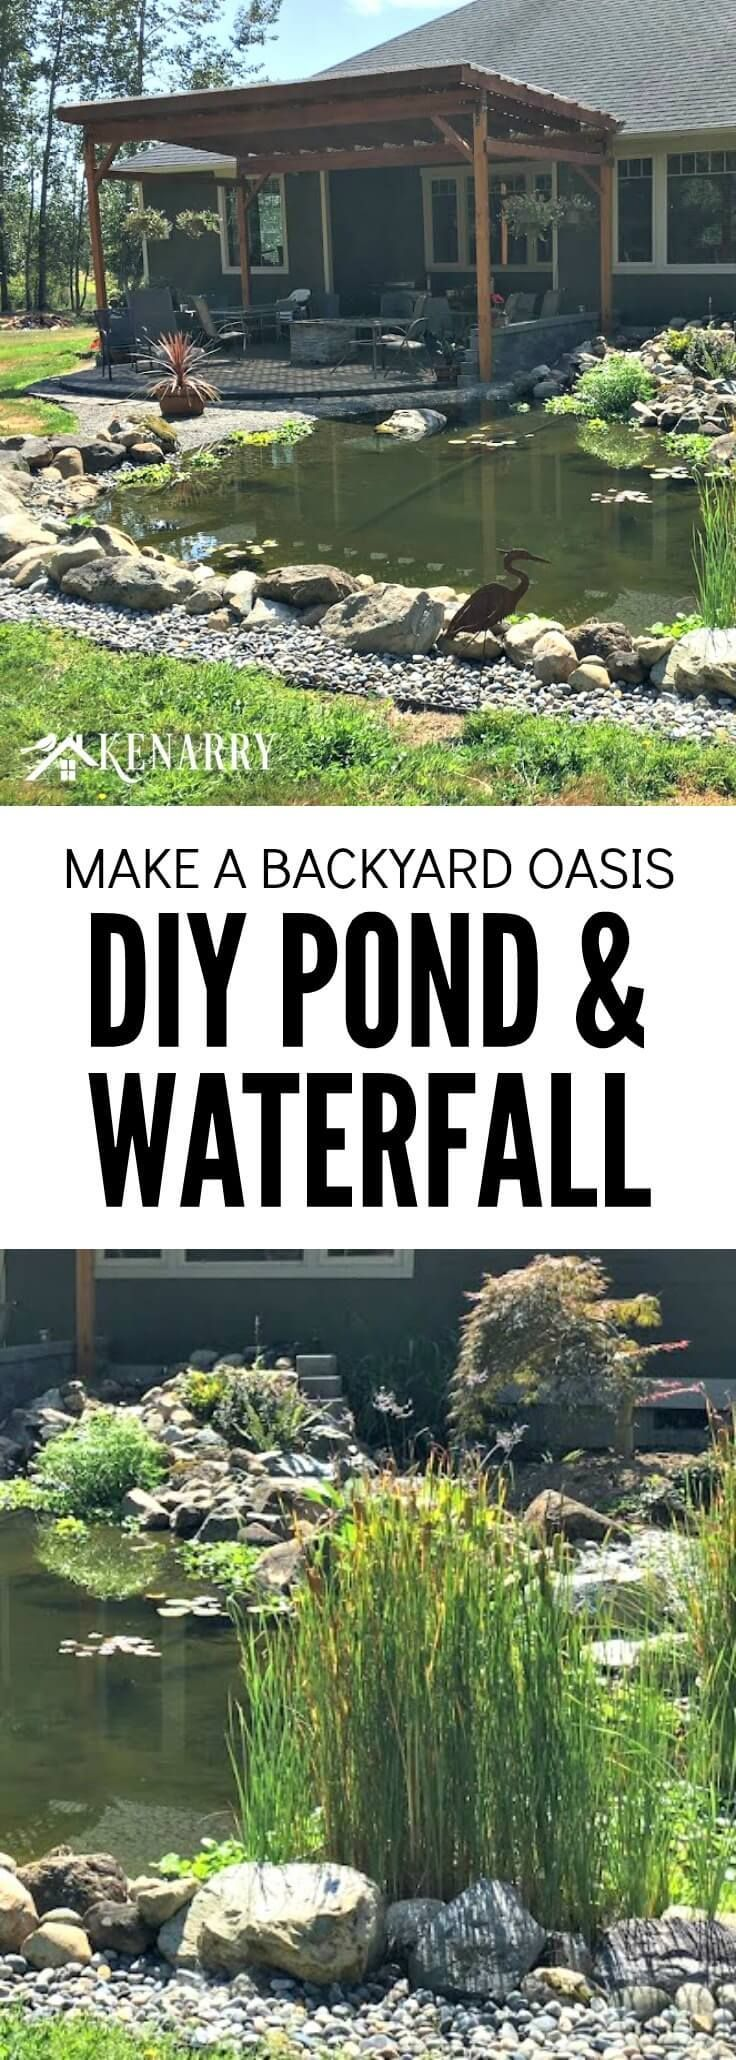 pond filter hydro vortex waterfall filters easy to clean